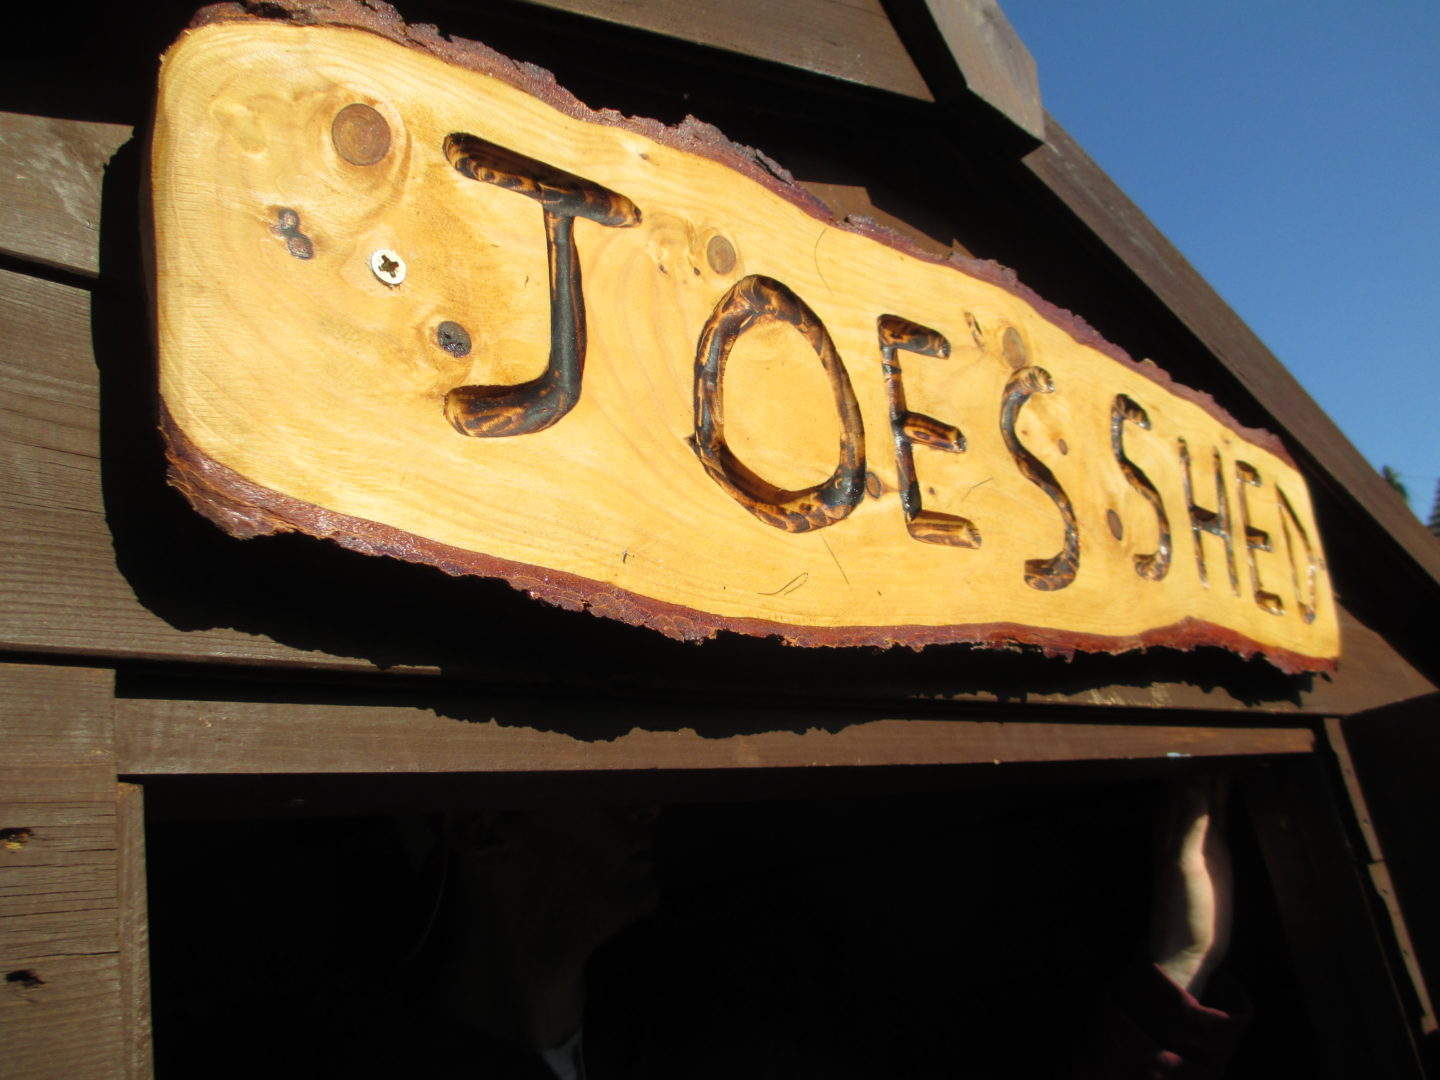 Joe's shed. No really, it has his name on it.